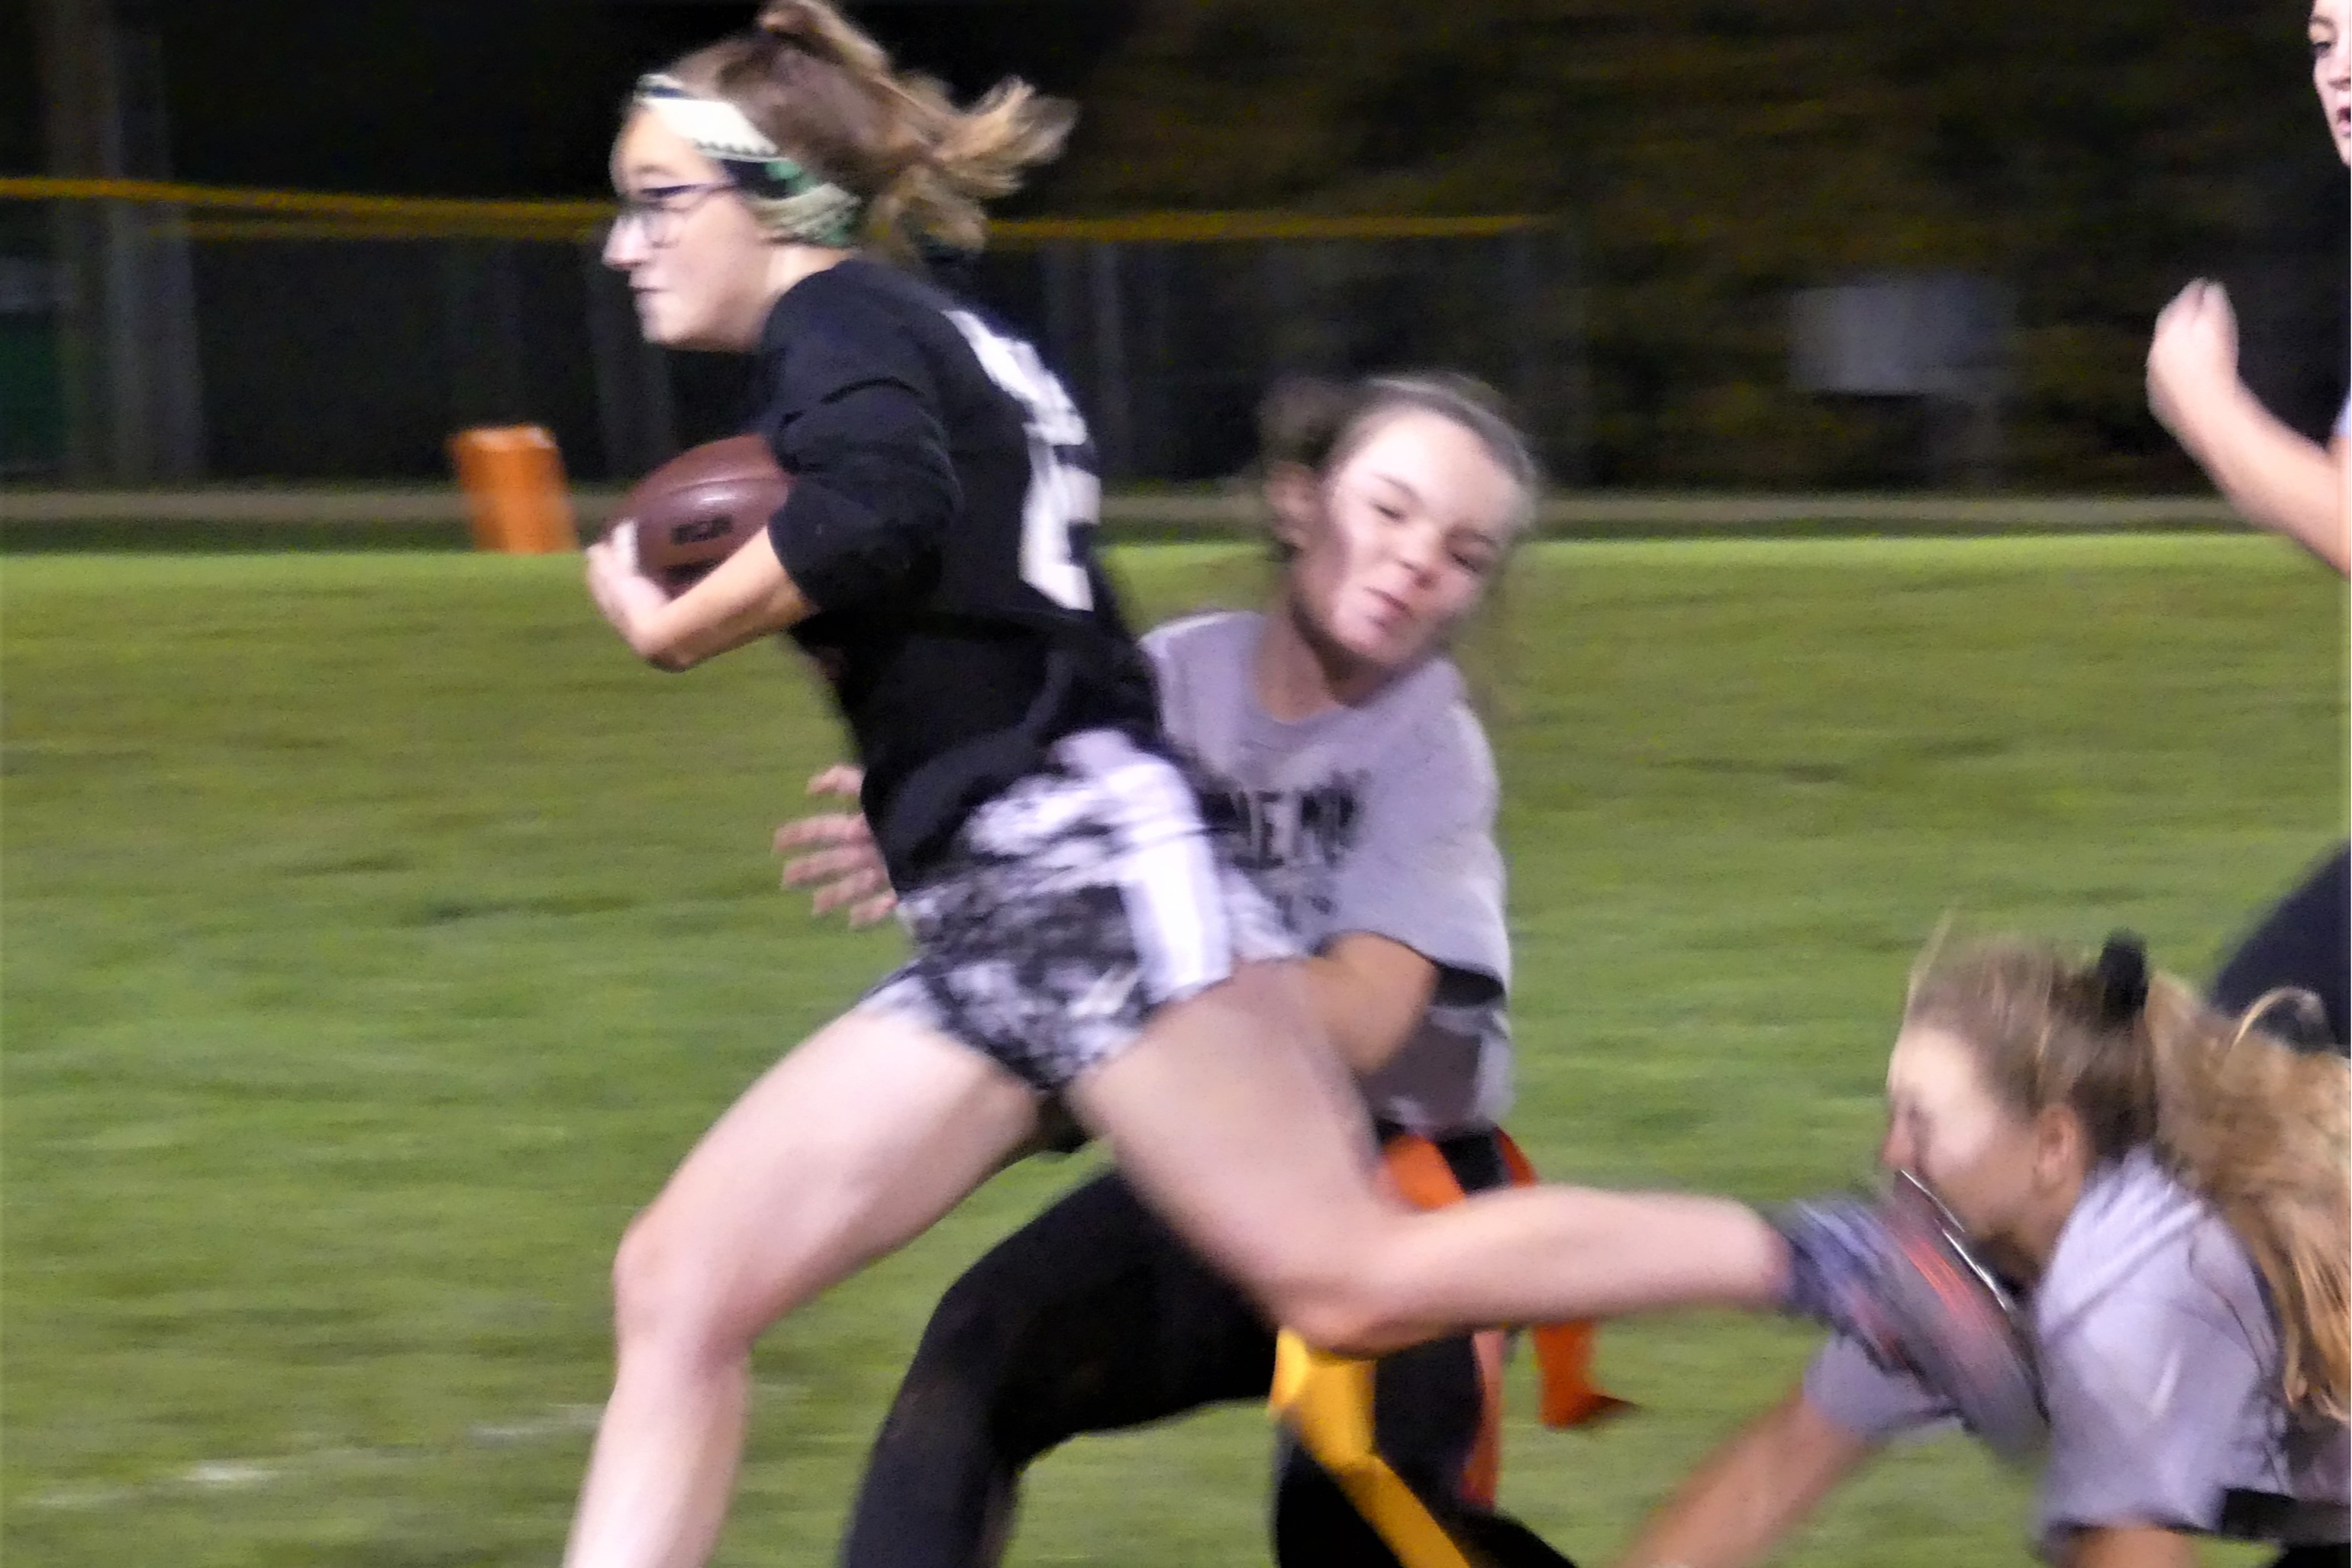 Homecoming Powder Puff Game. Team grabs for the flags of the running back. The running back's left foot makes contact with a player on the opposing team.